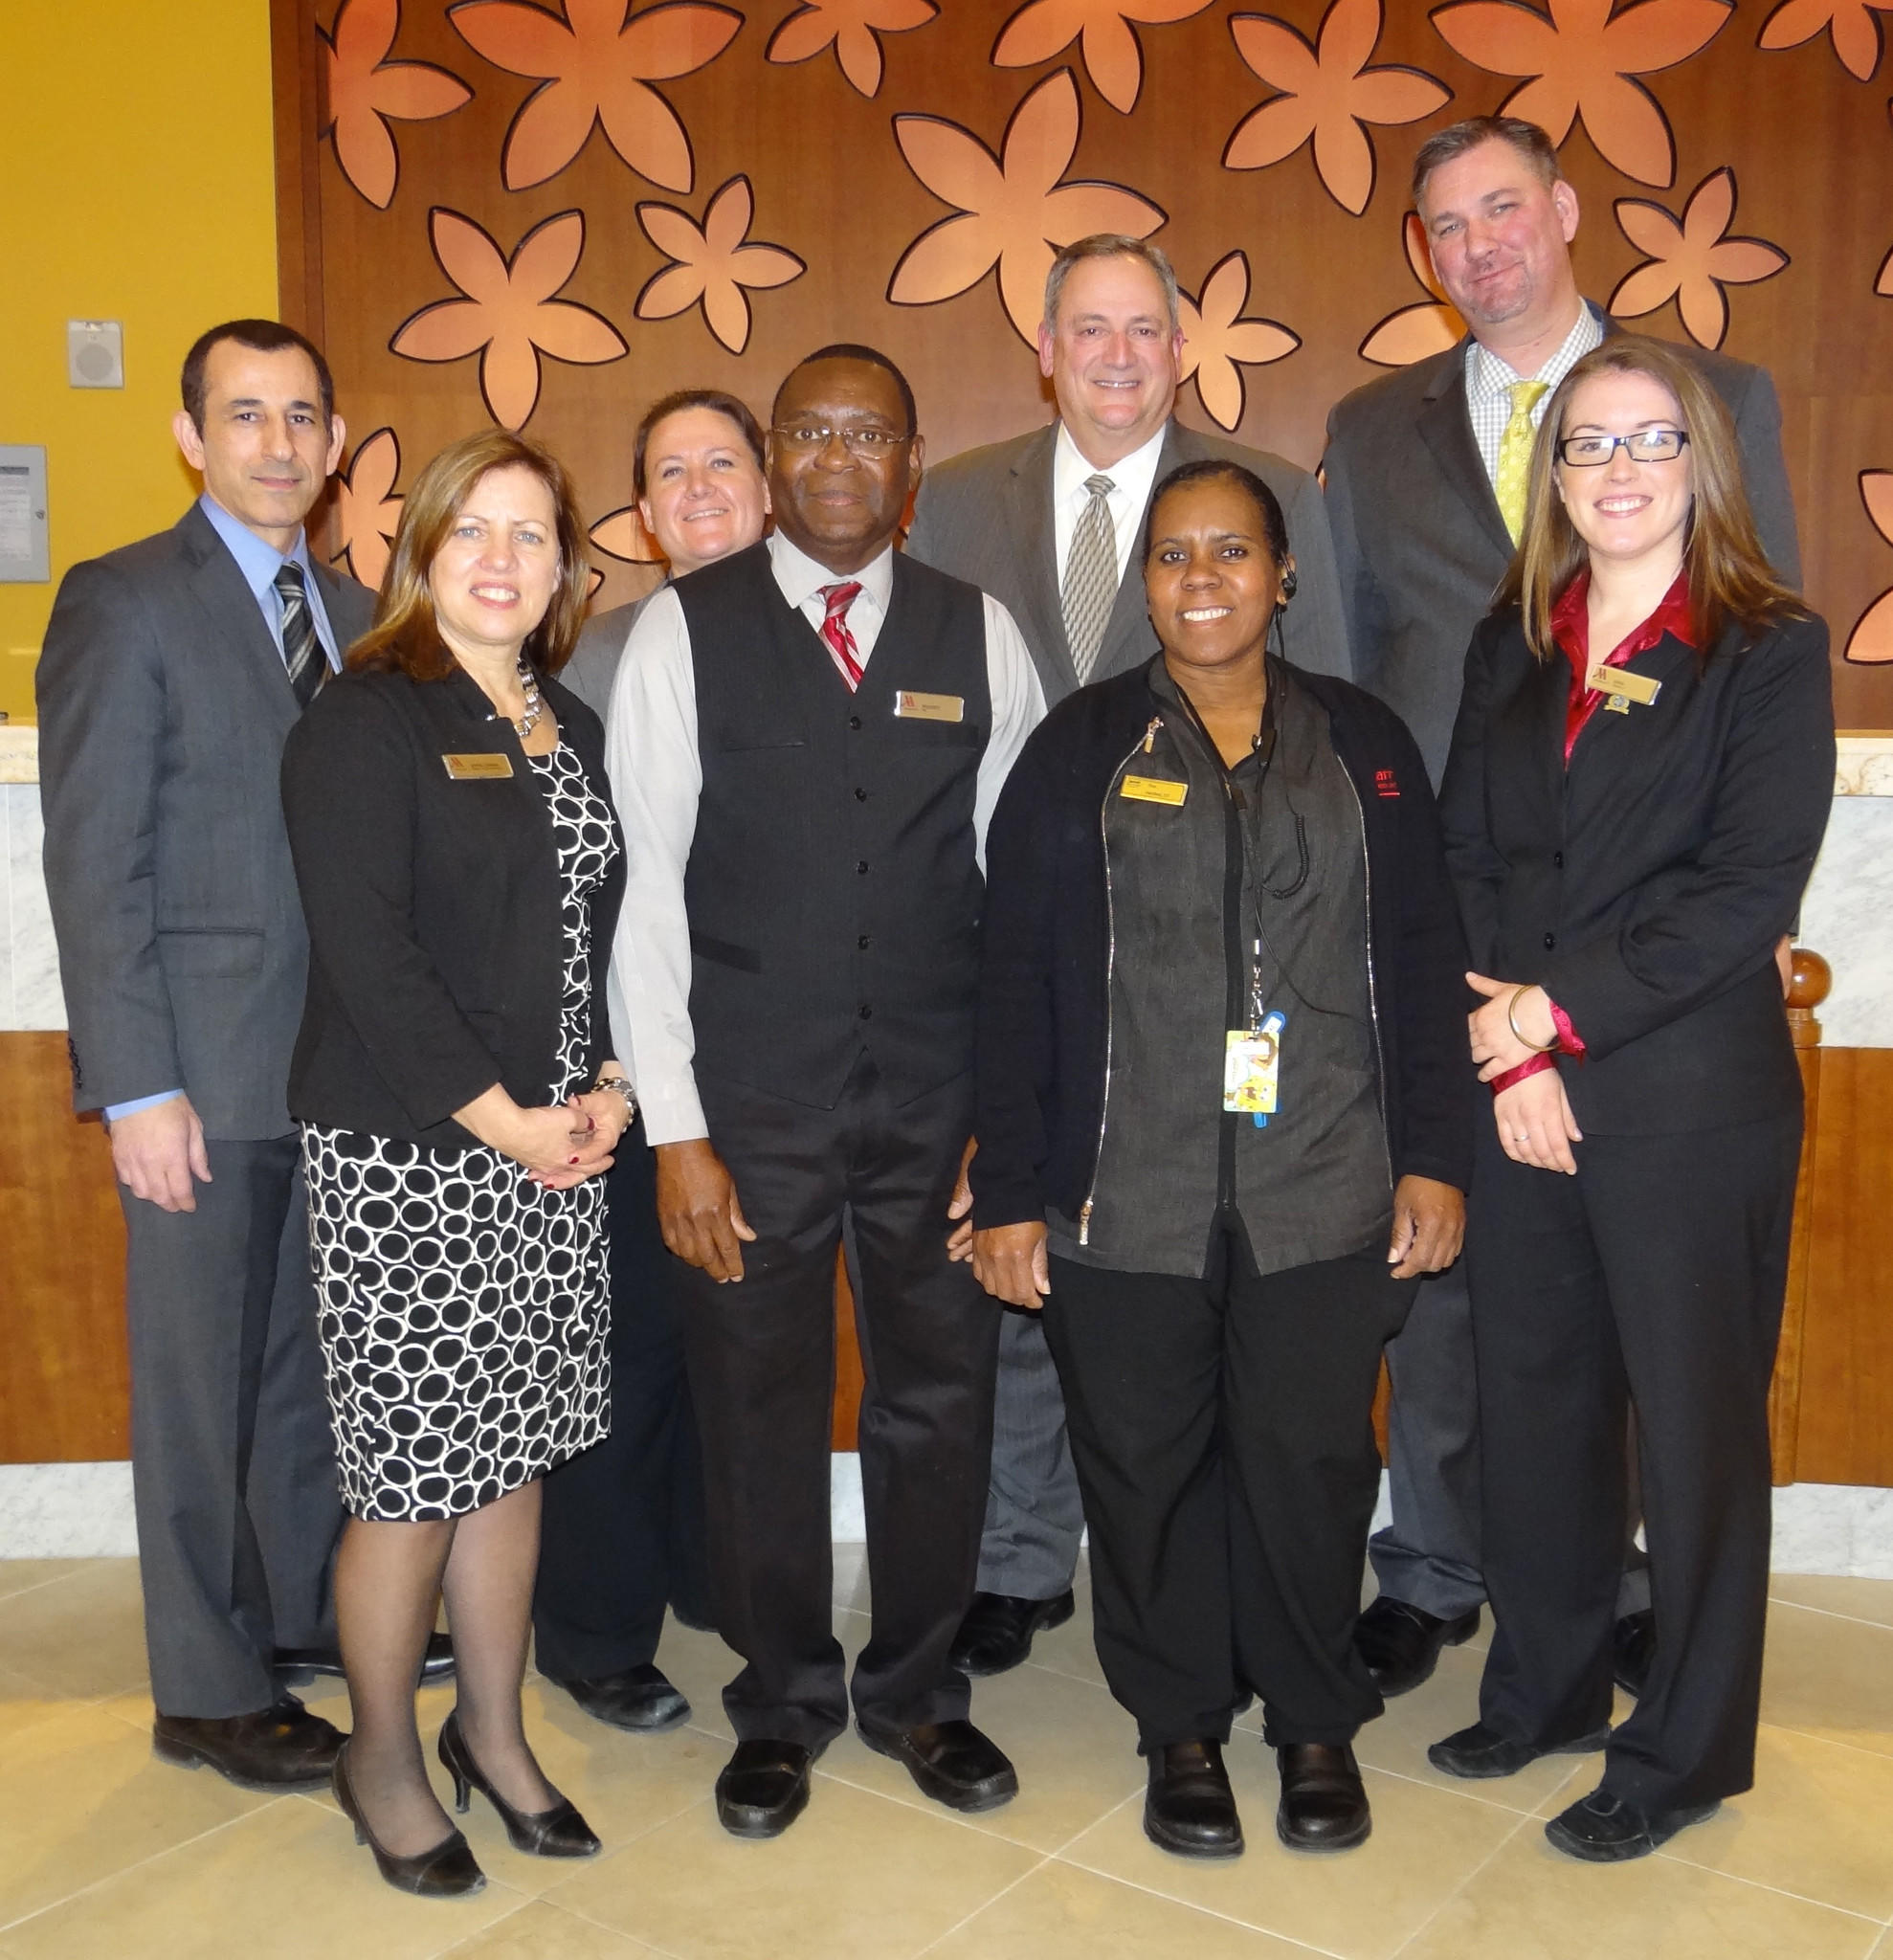 From left to right, front row: Karin Ziemba, Director of Human Resources; Musset Joseph, Room Service Server; Treslyn St. Martin, Houseperson; Erin Kennedy, Concierge Attendant. Back row left to right: Ali Dezfoli, Director of Rooms; Chelsea Doyon, Executive Housekeeper; John Fraher, General Manager; and Ron Wichowski, Director of Operations